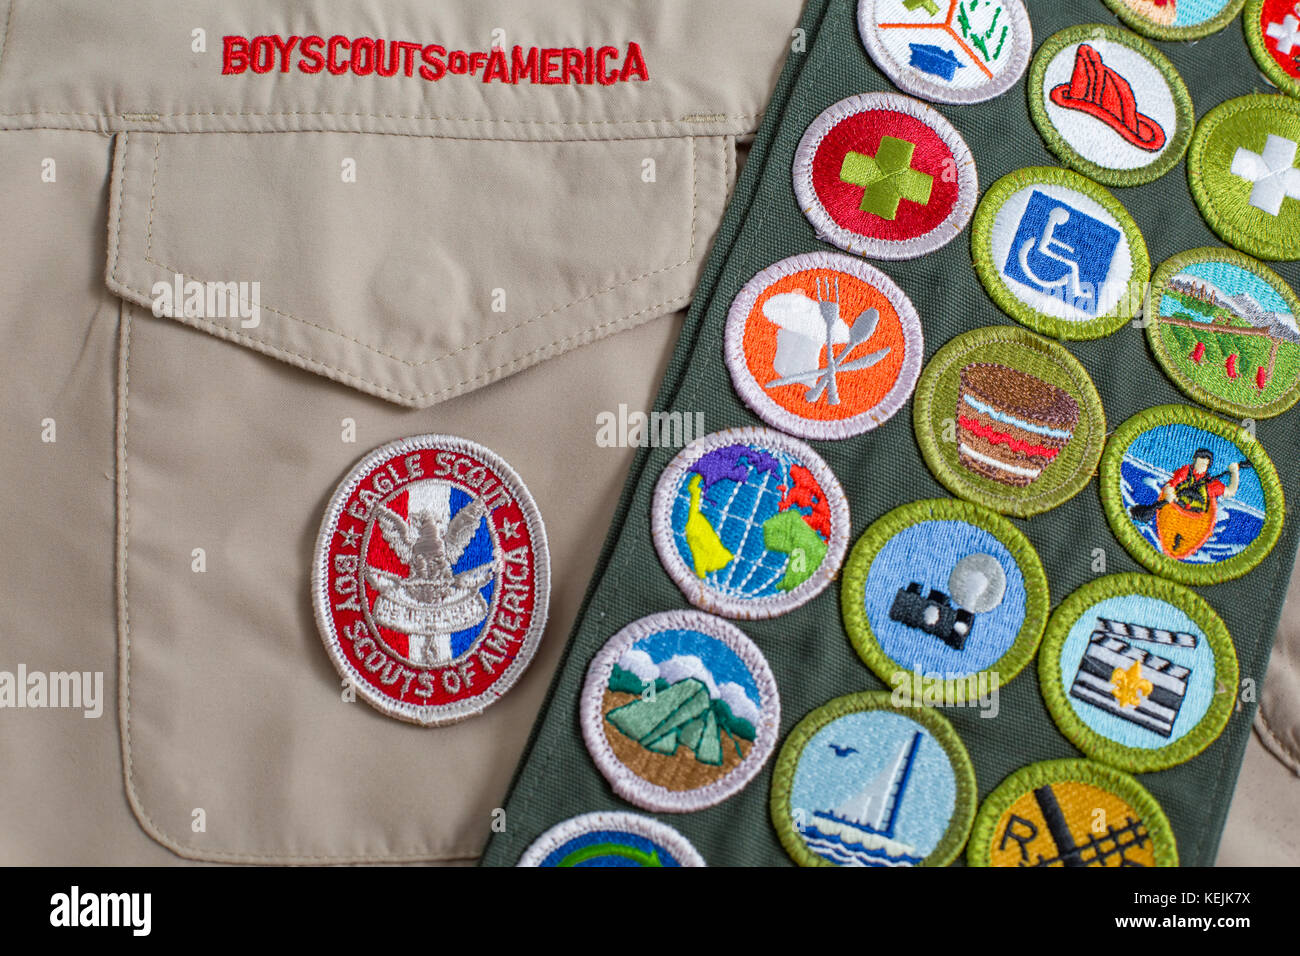 SAINT LOUIS, UNITED STATES - OCTOBER 16, 2017:  Eagle patch and merit badge sash on Boy Scouts of America (BSA) - Stock Image